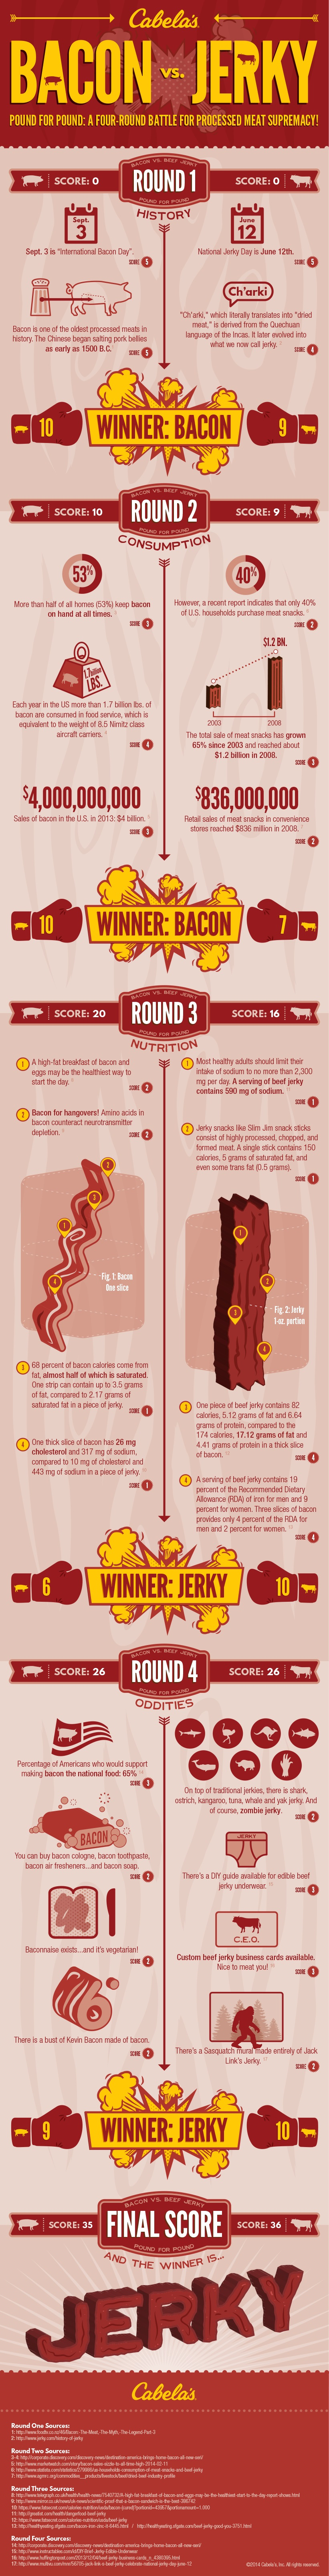 Bacon Vs Jerky Infographic